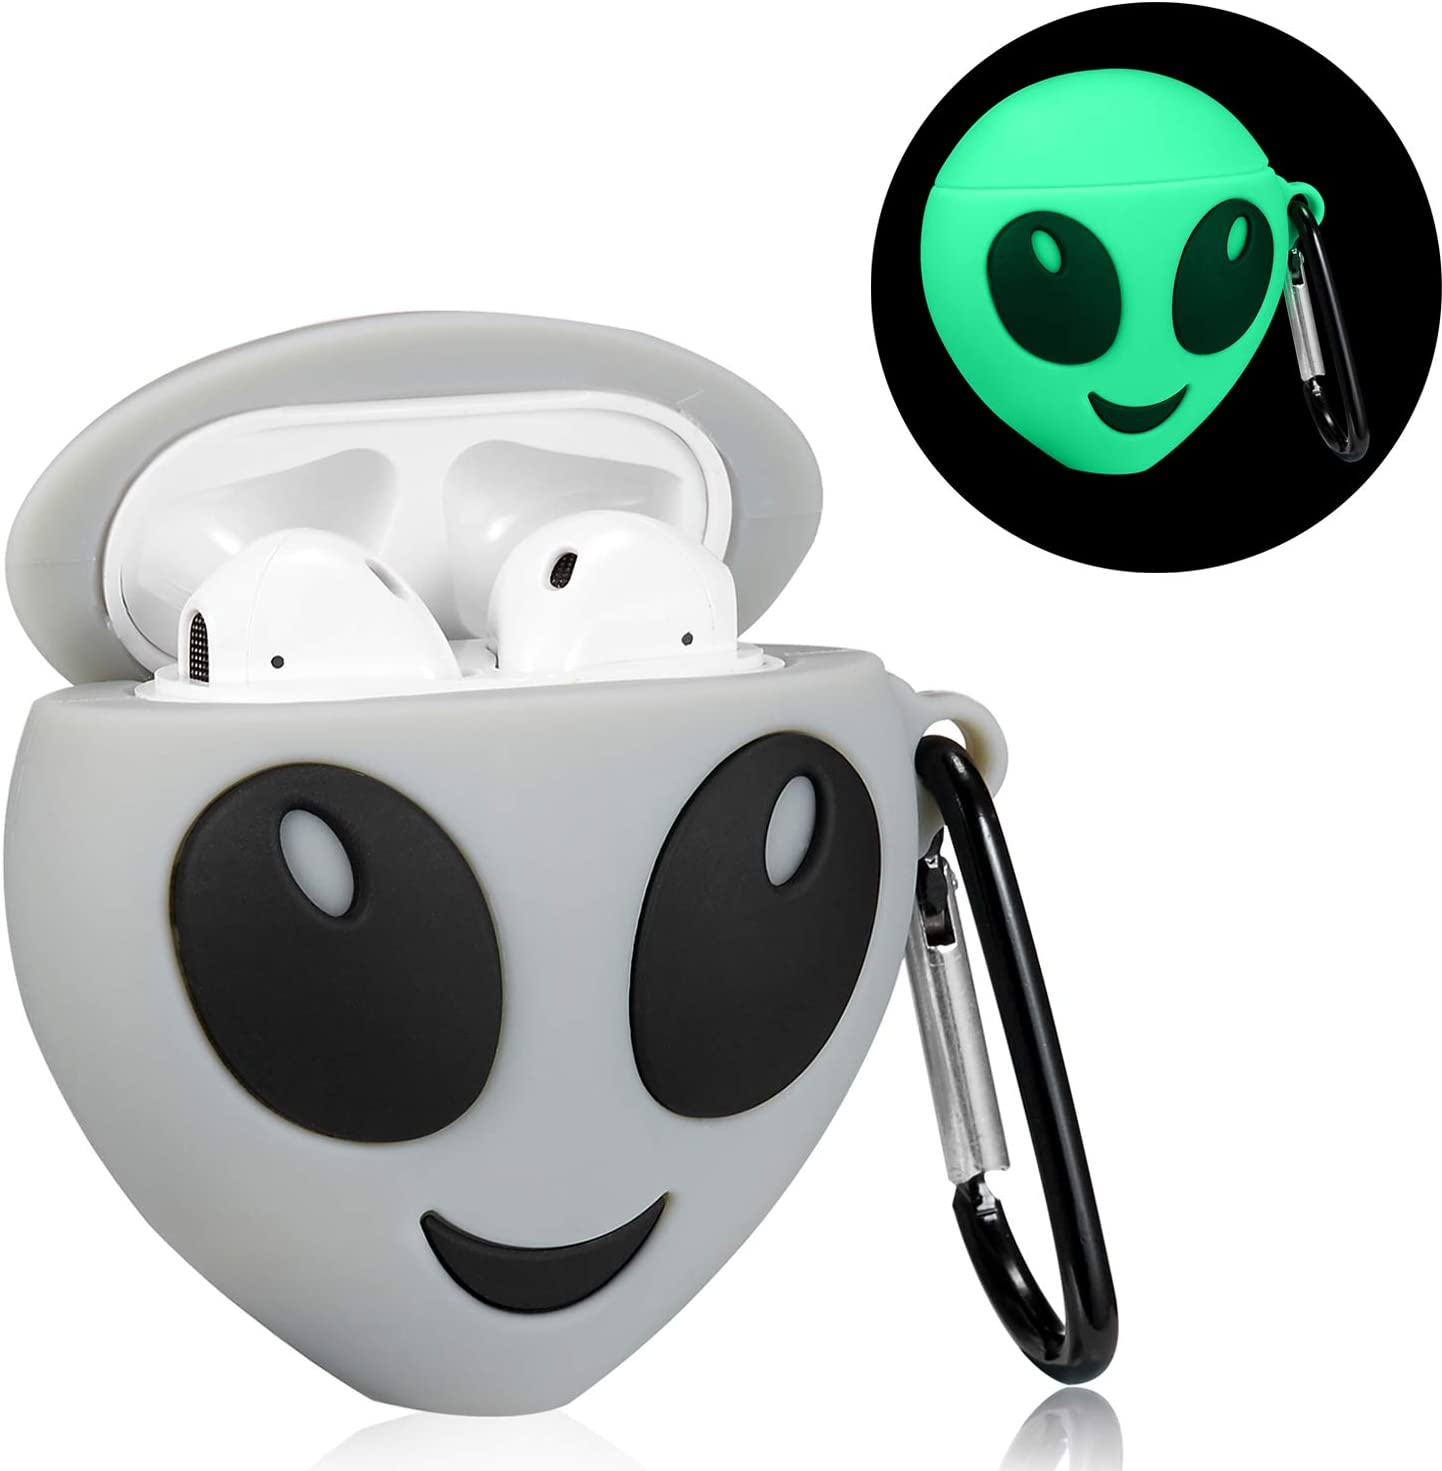 Lupct White Camera Compatible with Airpods 1//2 Case Silicone,Cute Cartoon 3D Cool Air pods Design Cover Fun Kawaii Fashion Stylish Funny Cases for Kids Girls Teens Boys Character Skin Keychain Airpod